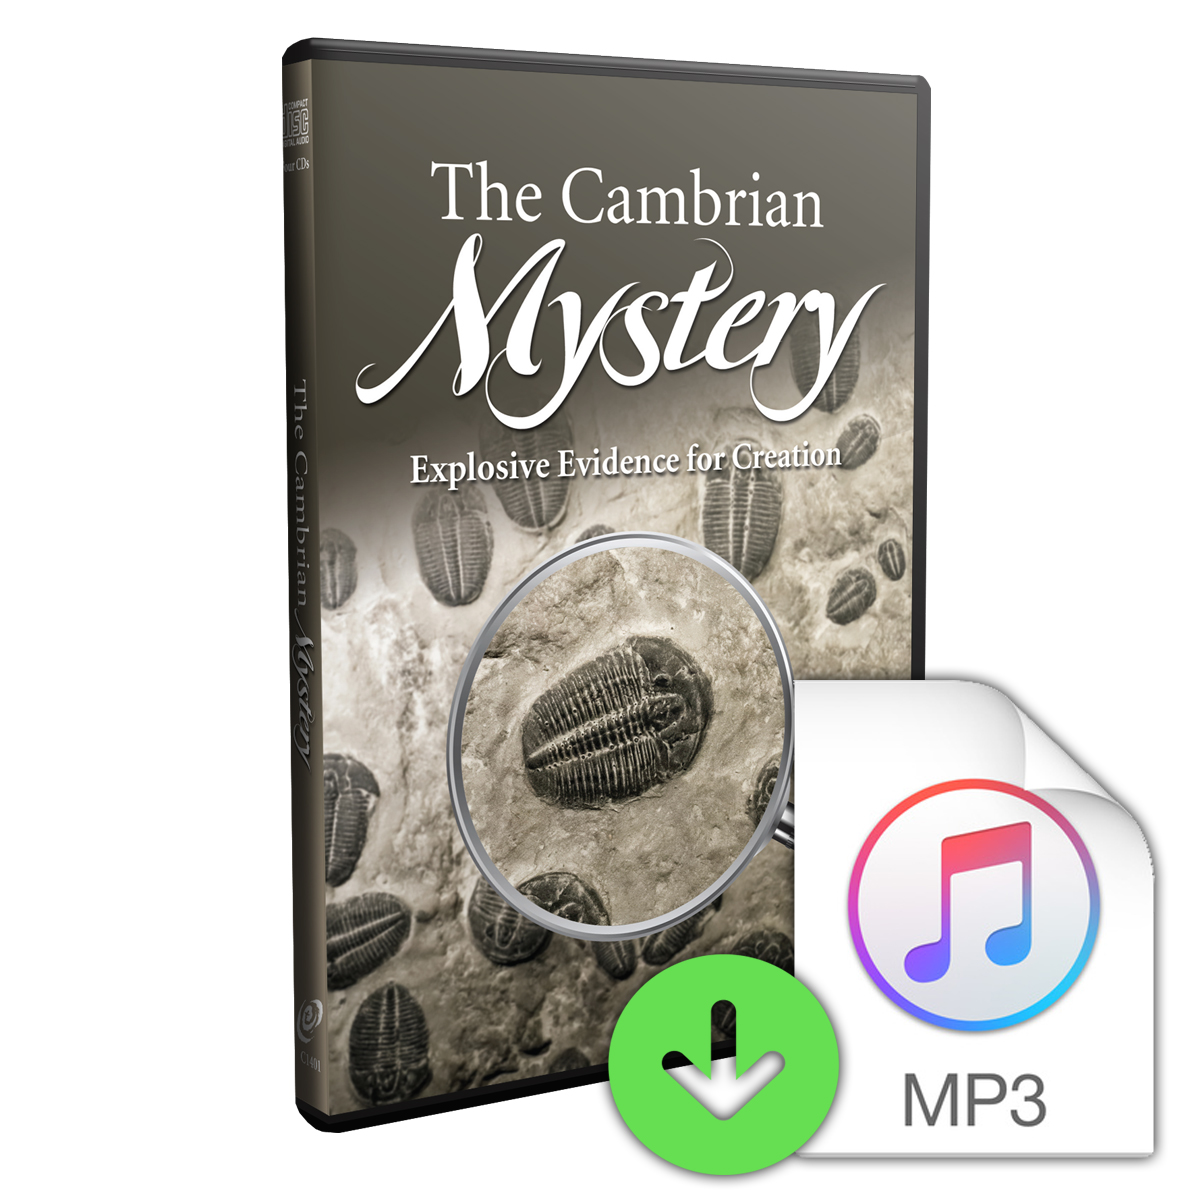 The Cambrian Mystery: Explosive Evidence for Creation (Downloadable MP3) Image